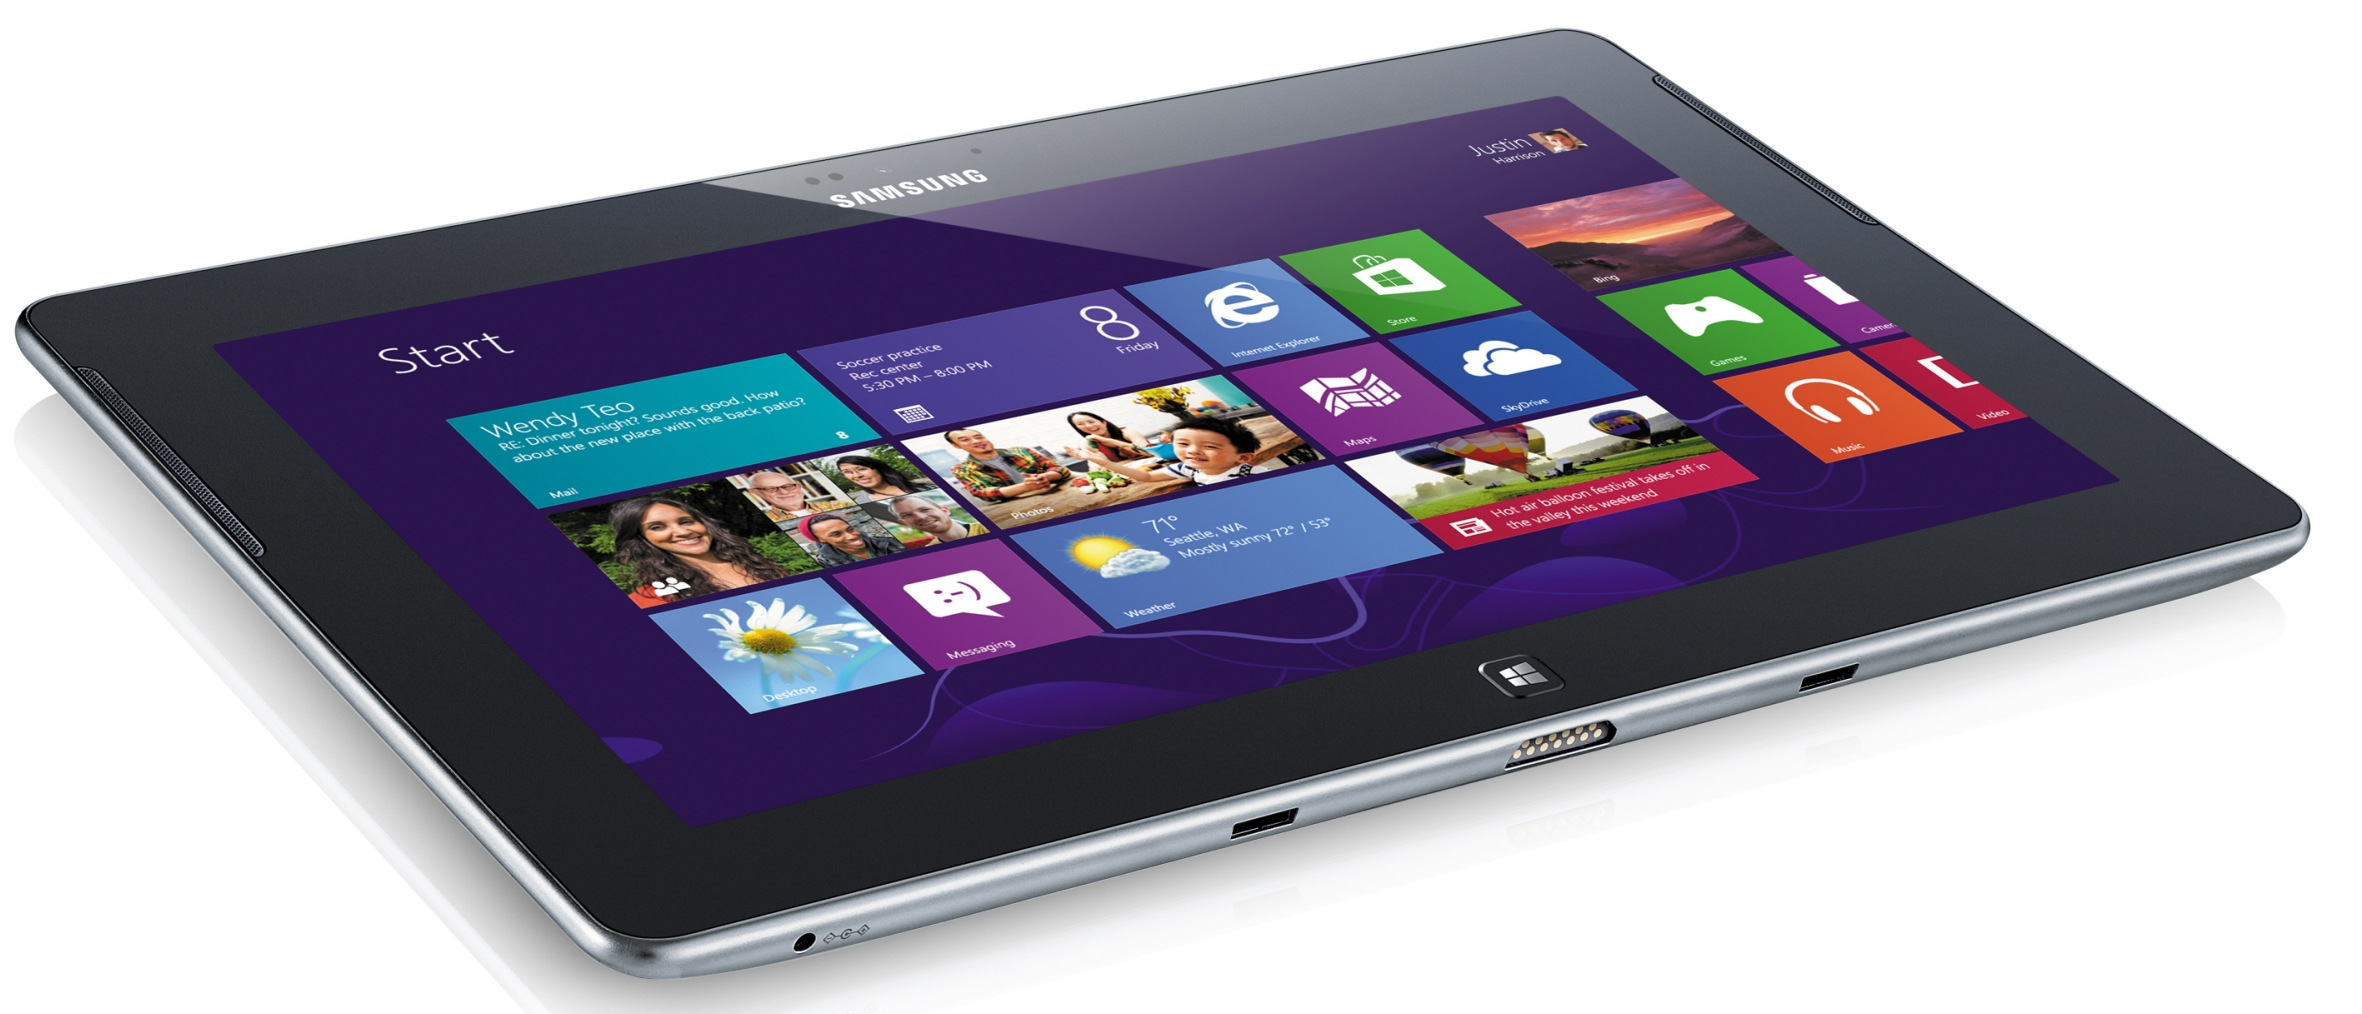 Samsung's ATIV Tab. Note the front-mounted speakers, dock connector, and physical Windows button.